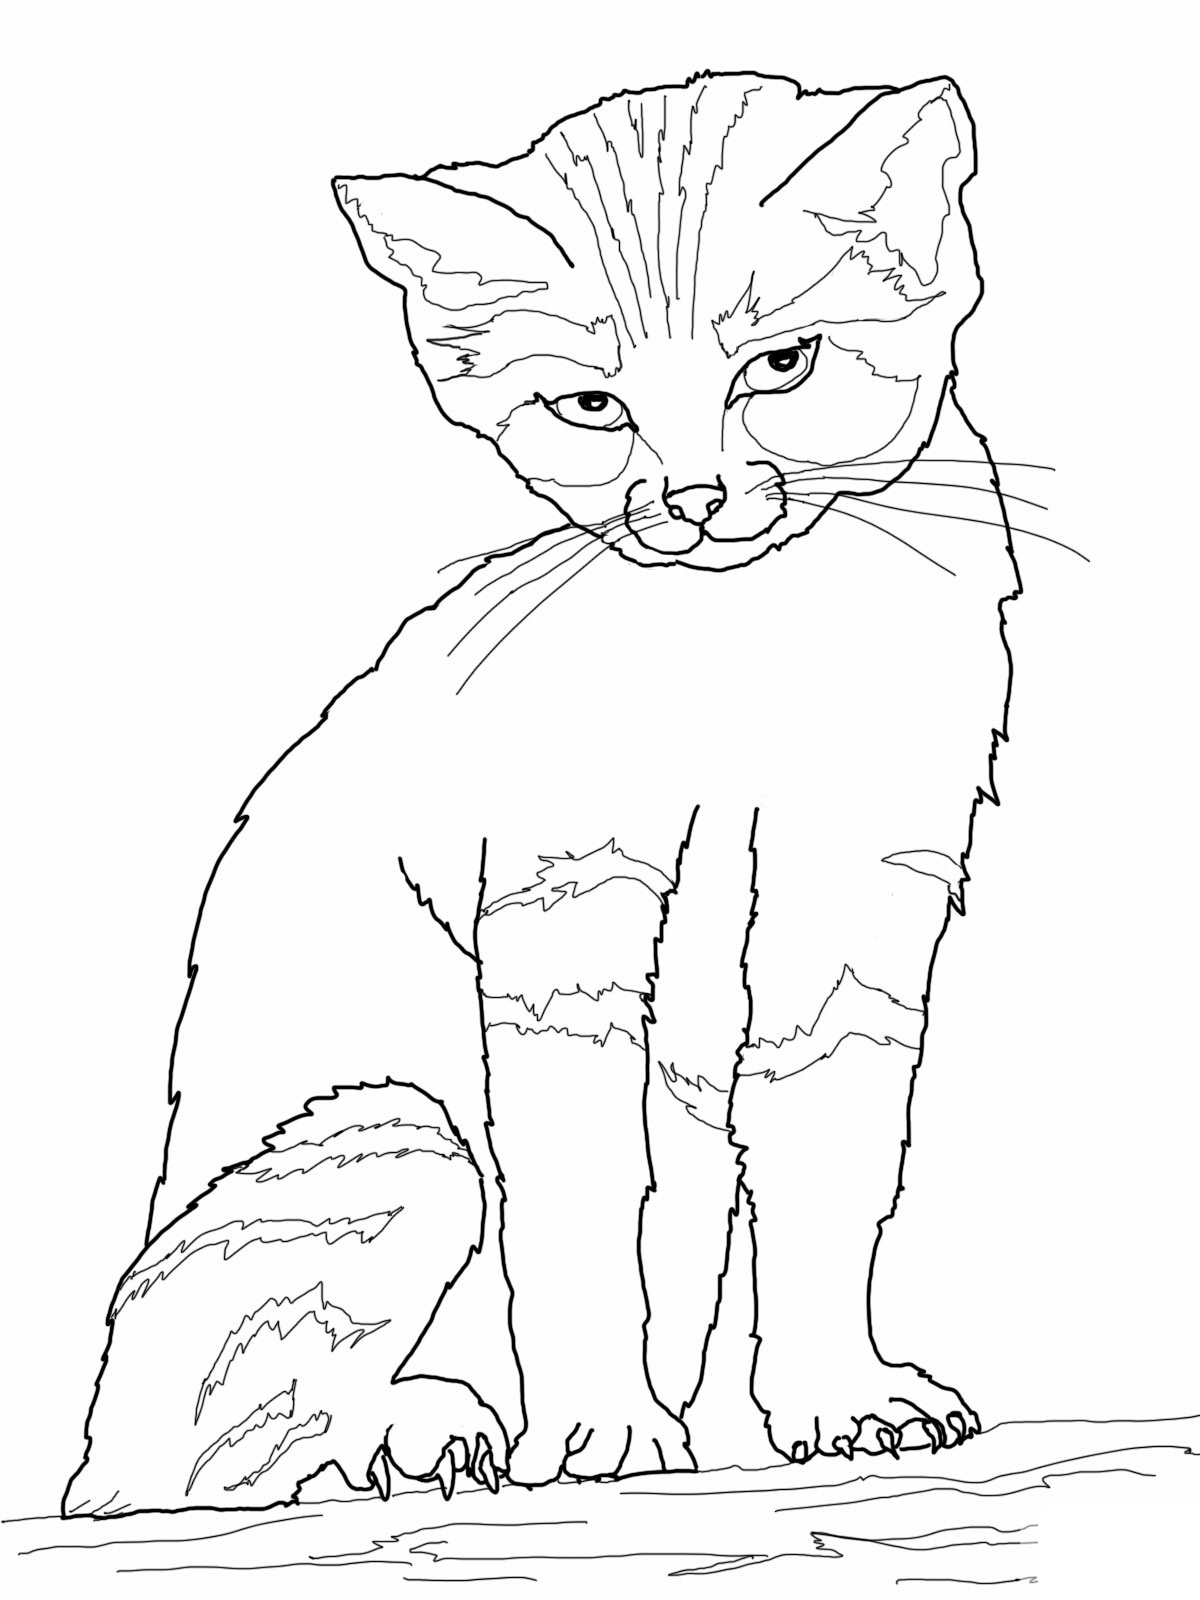 cat pages for coloring - photo#25